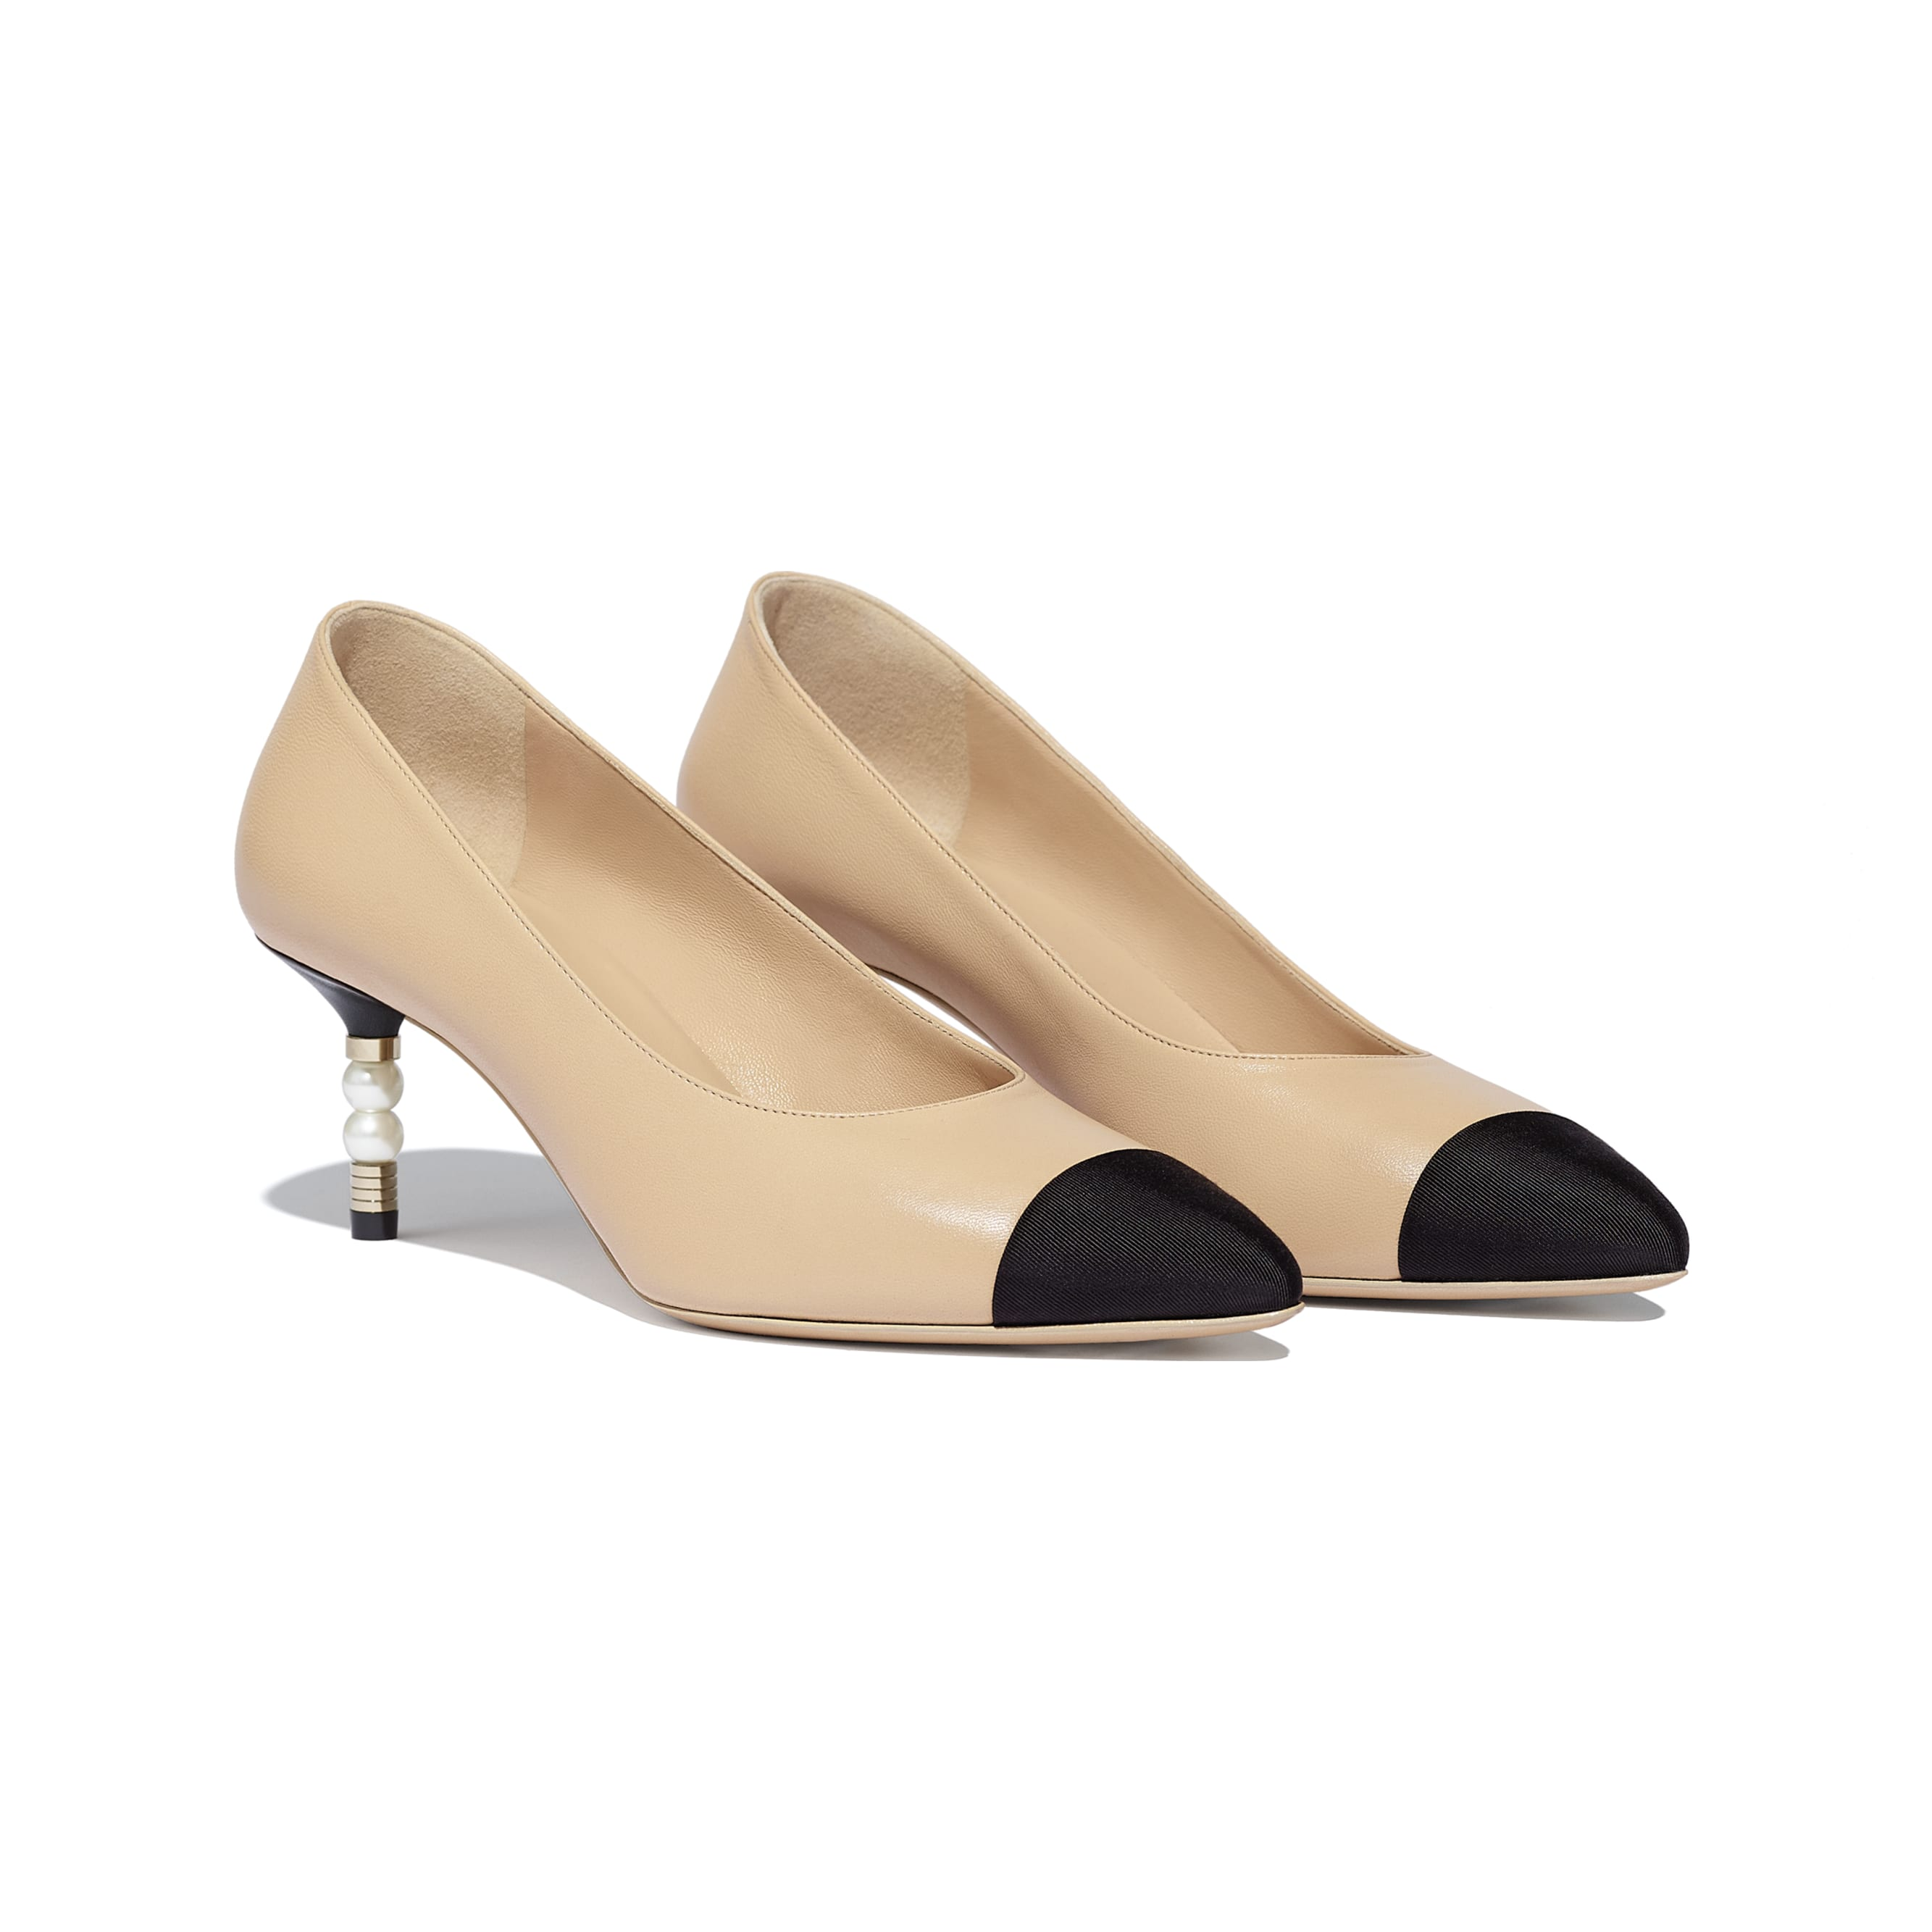 Pumps - Beige & Black - Lambskin & Grosgrain - Alternative view - see standard sized version